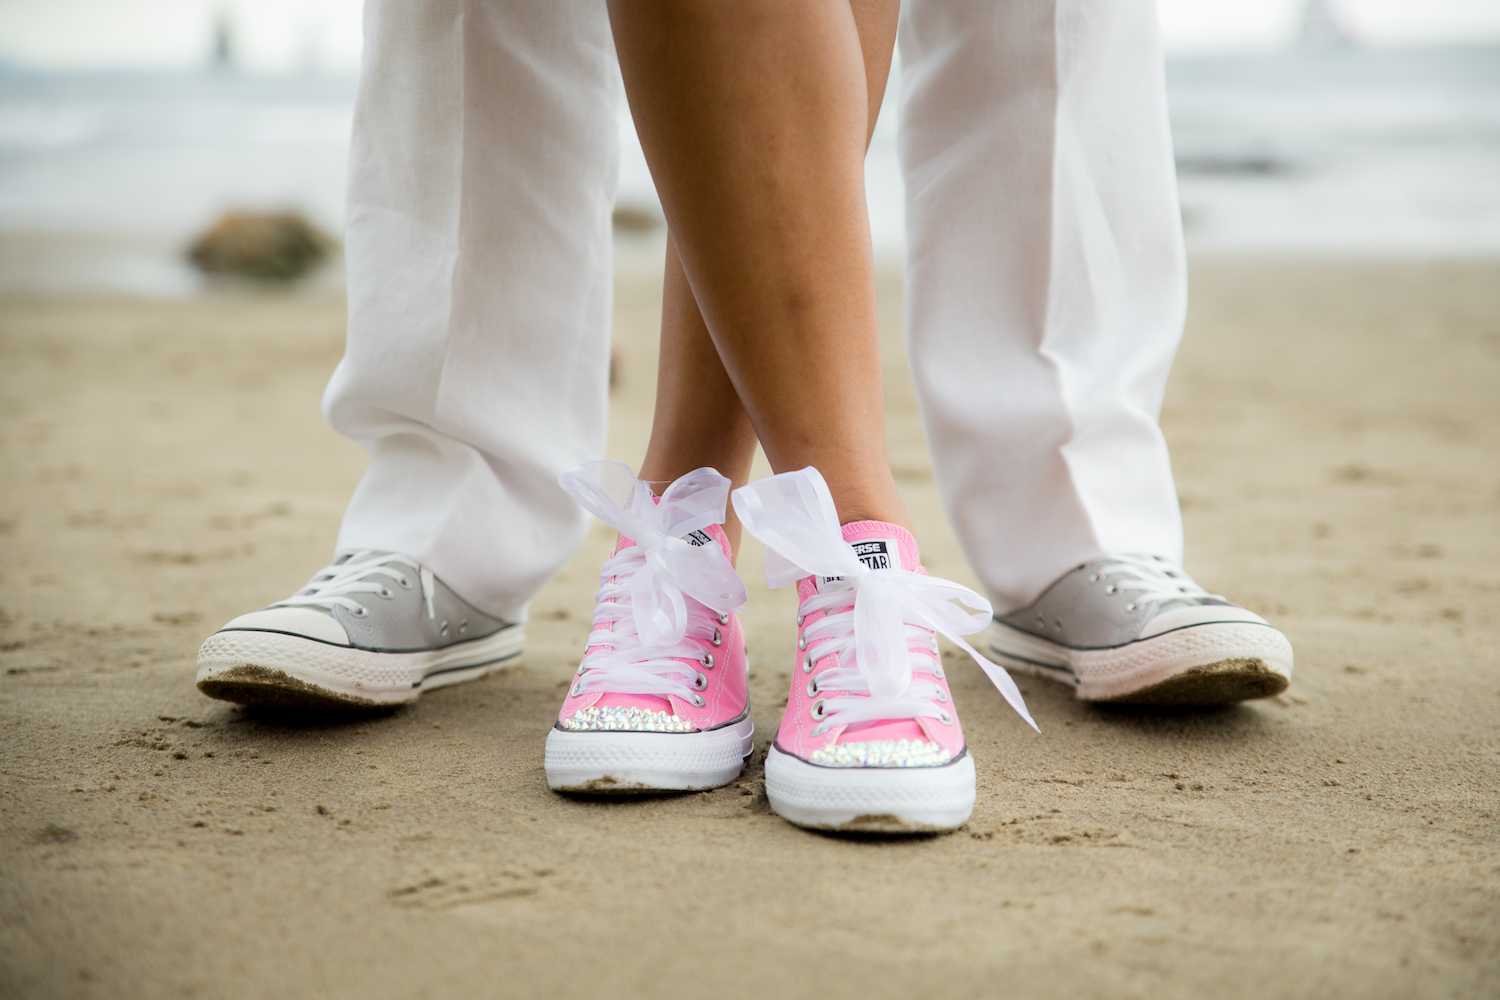 feet-crossed-pink converse.jpg